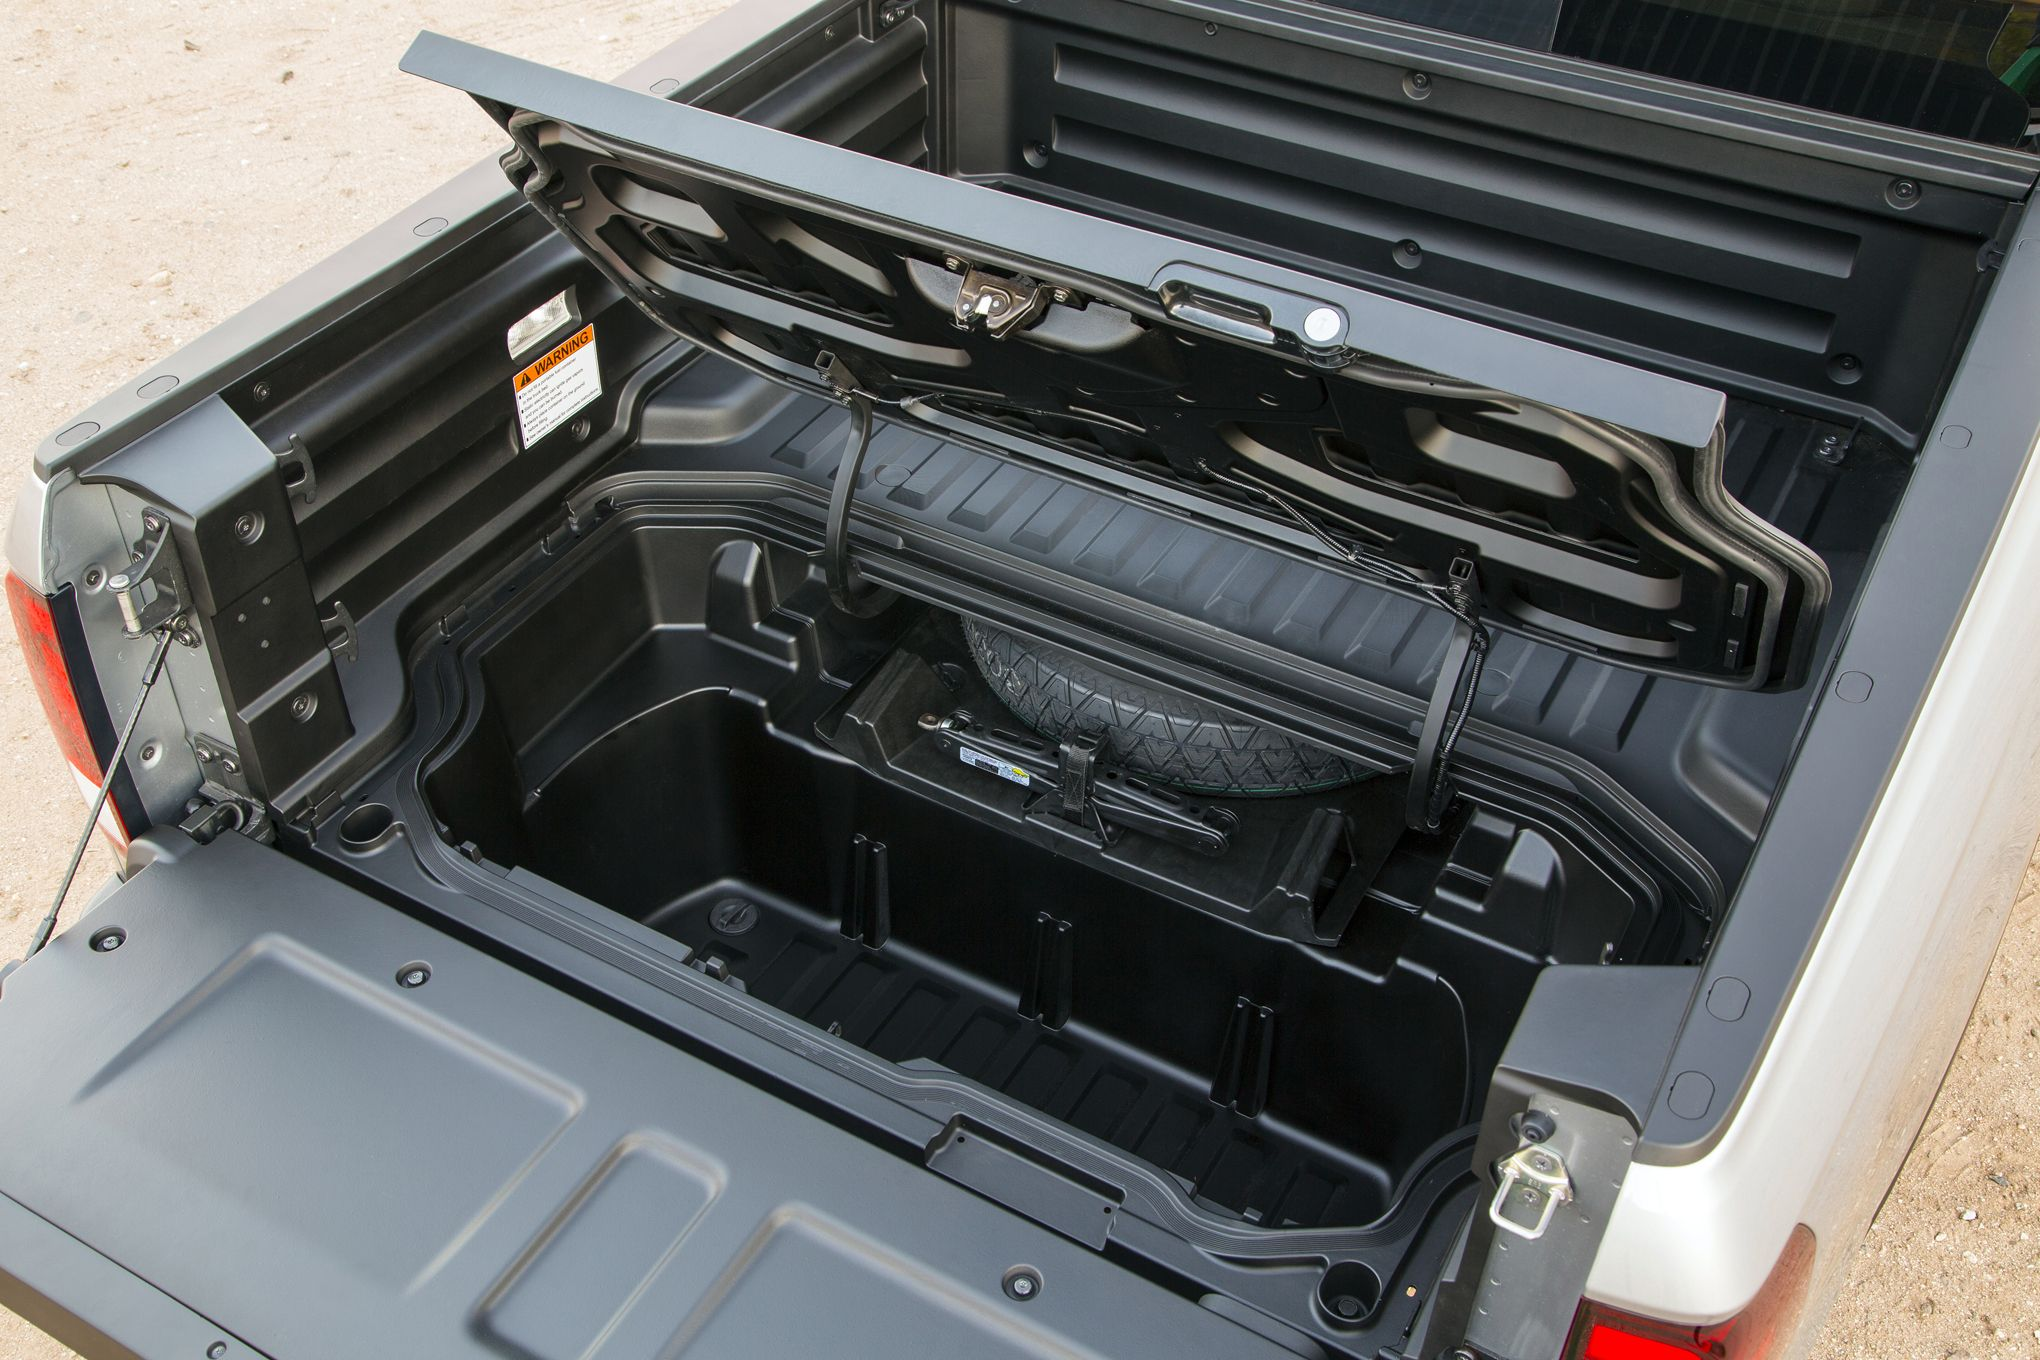 Honda Ridgeline, with inbed cooler and exciters to turn